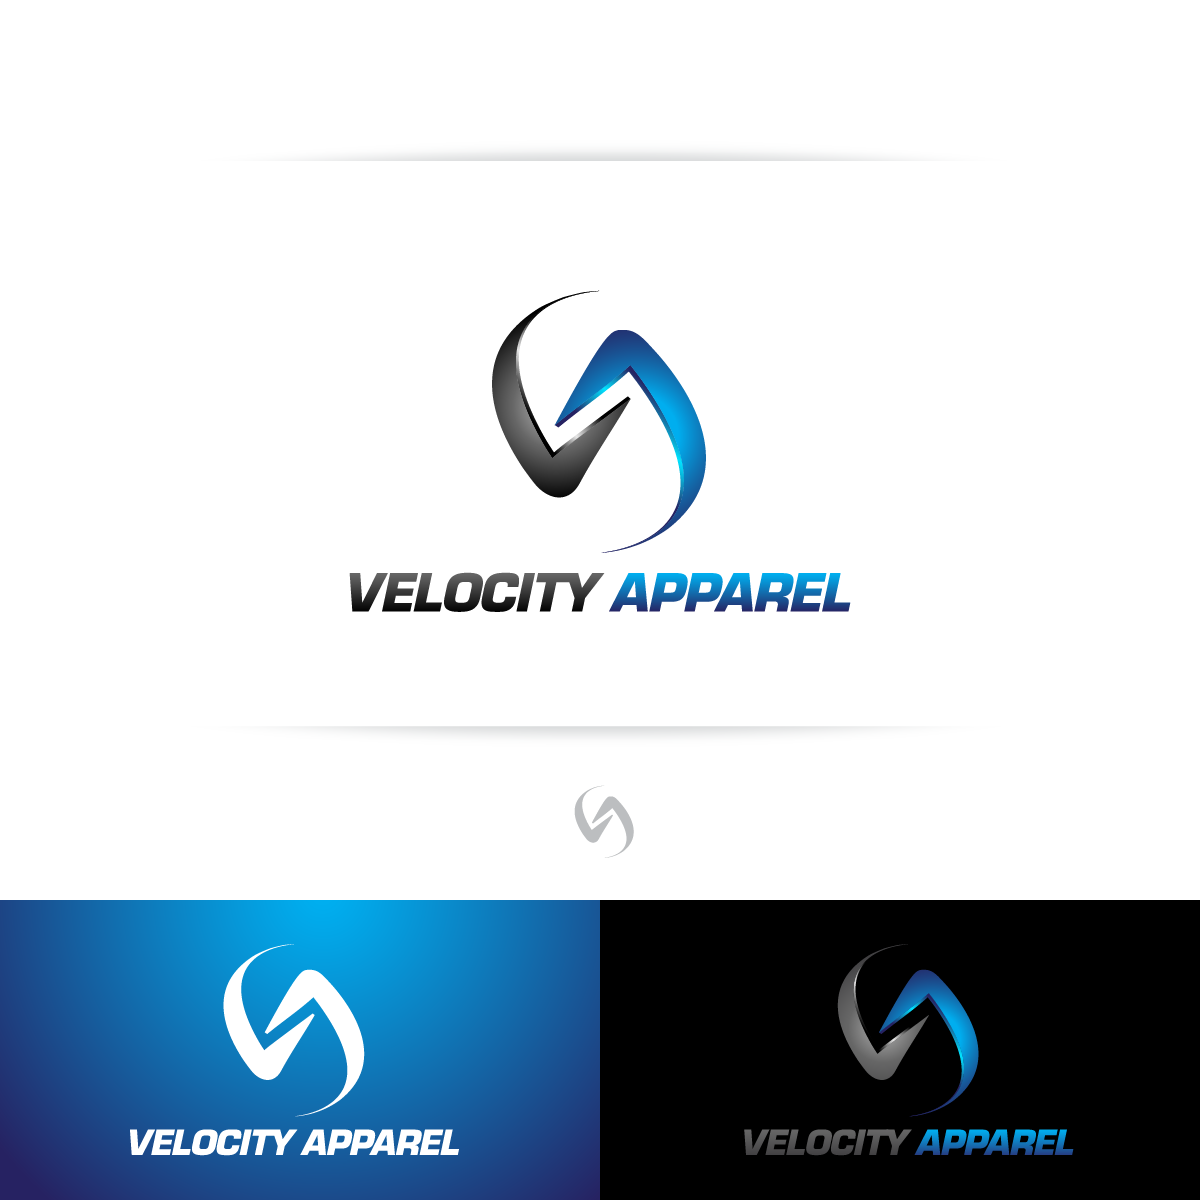 Help Velocity Apparel  with a new logo